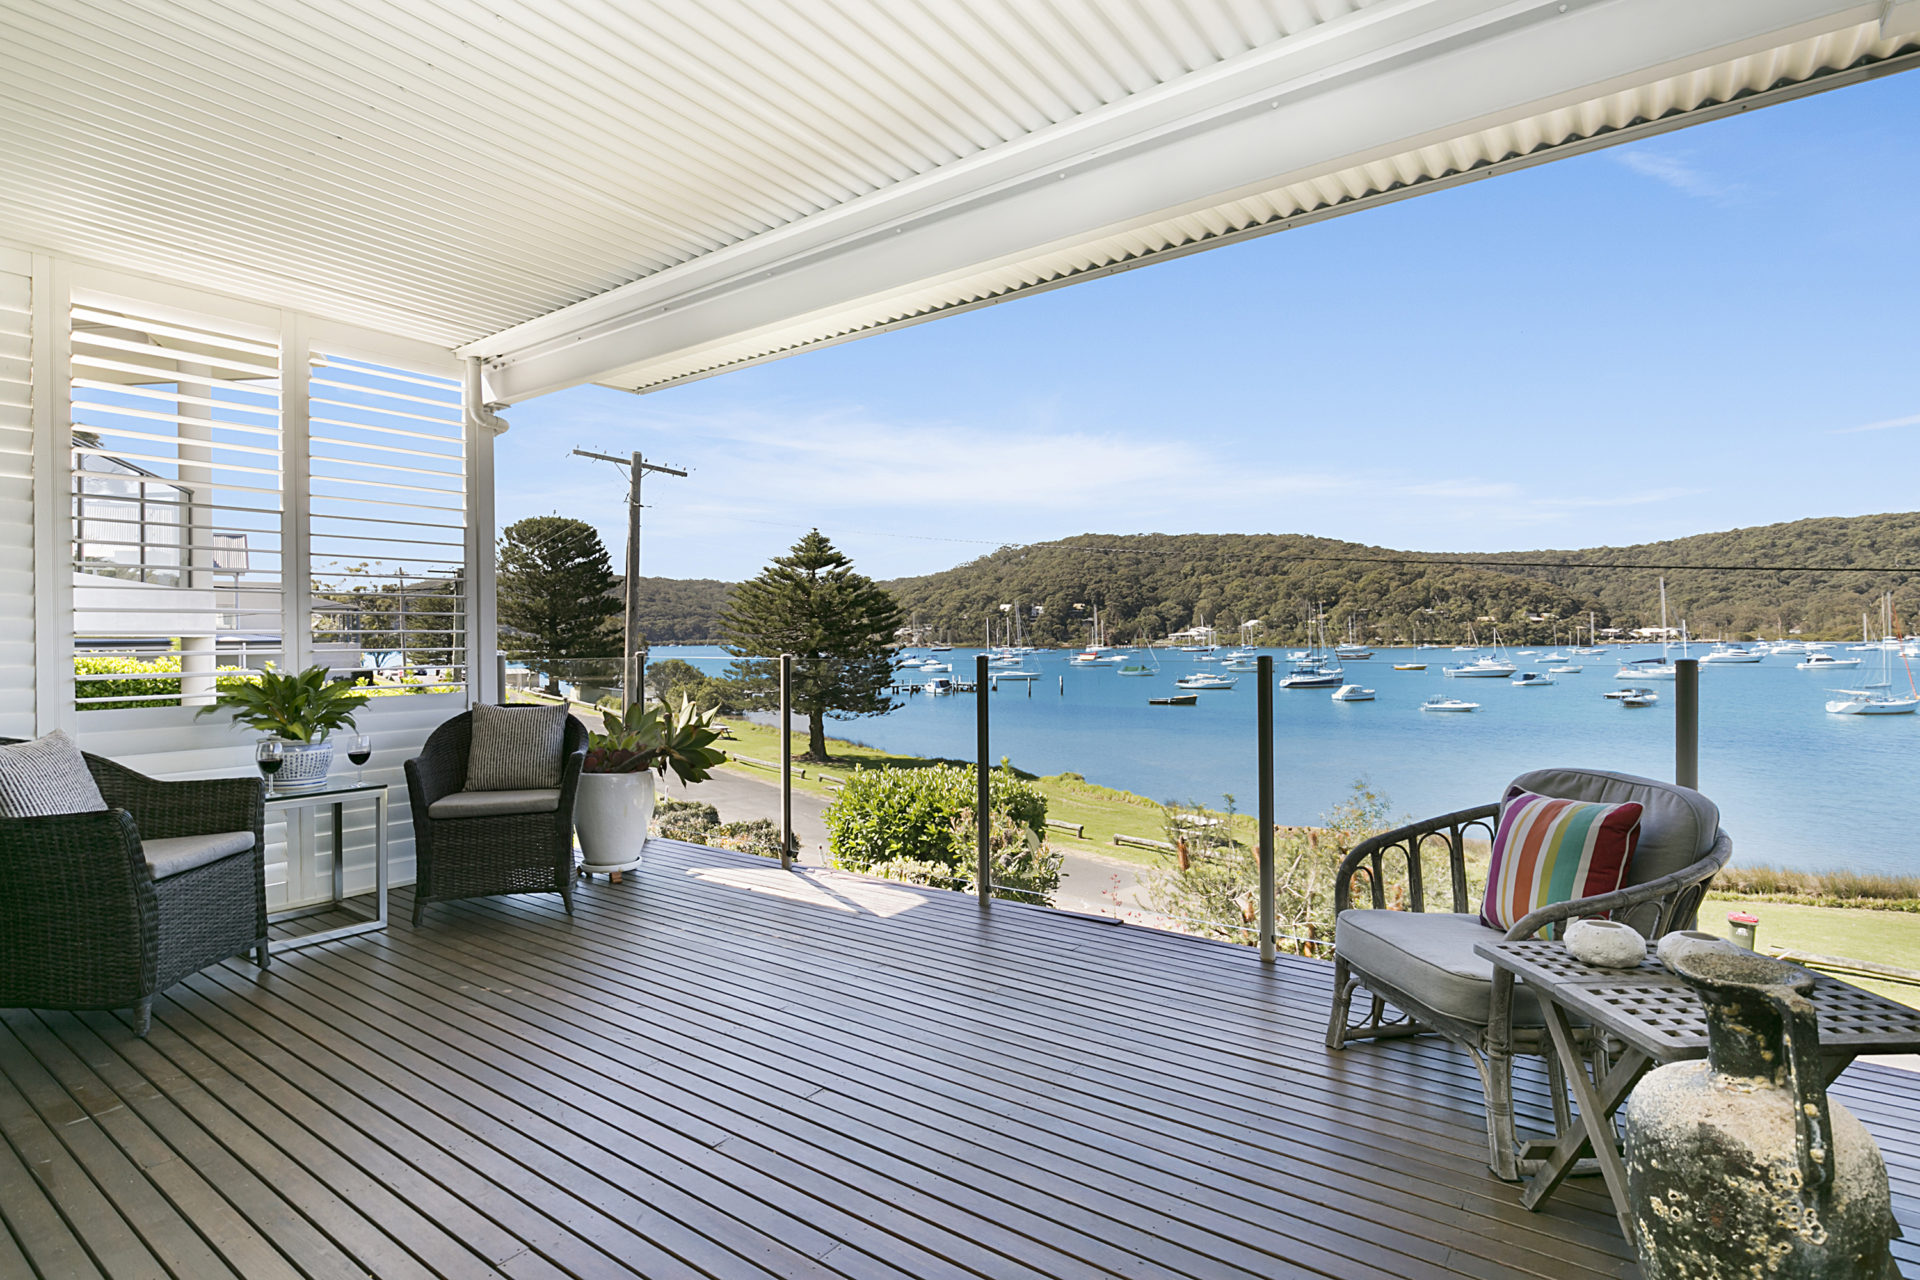 Hardys Bay Summer Delight - Pet Permitted Upon Request